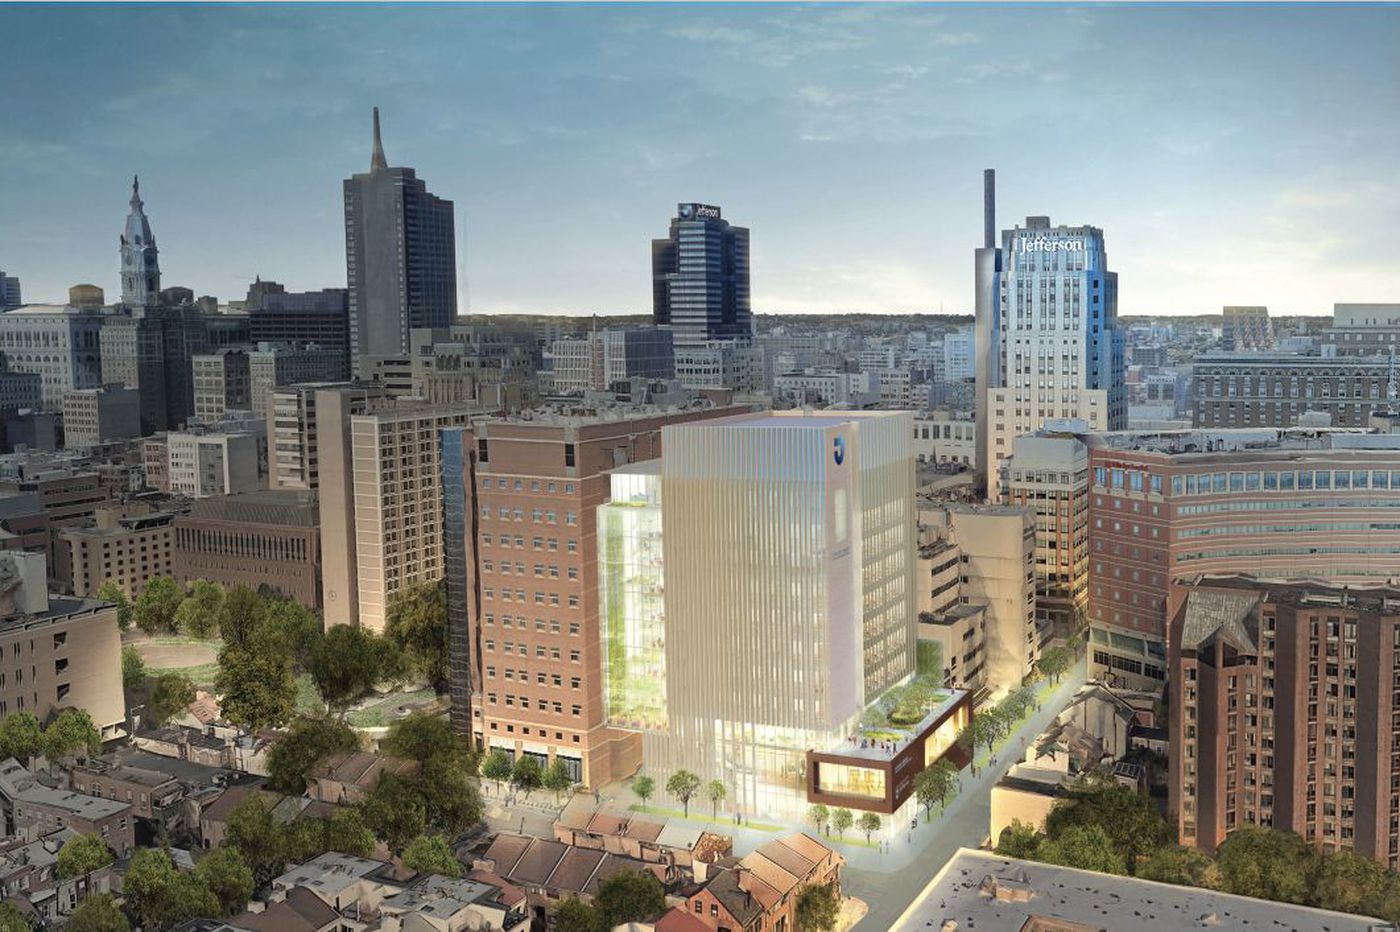 Jefferson University gets $70 million gift to help pay for new research tower in Philly